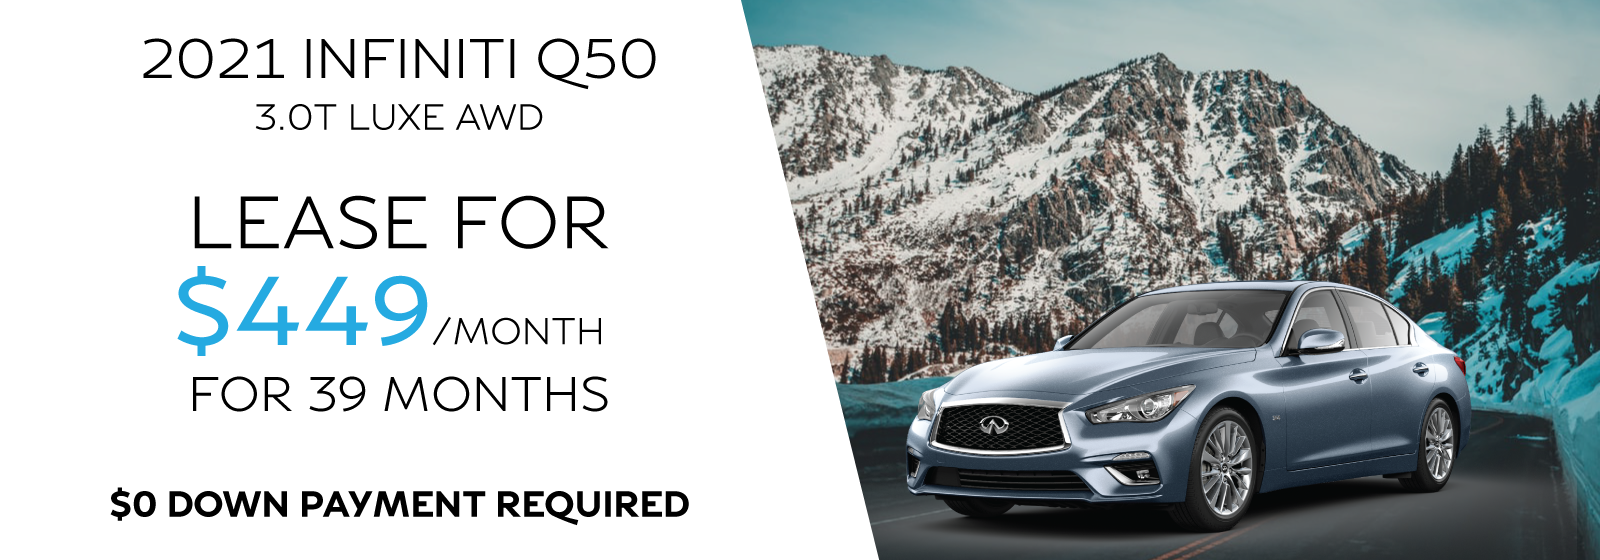 2021 INFINITI Q50 3.0t Luxe AWD Lease for $449/Month for 39 Months. Click to view inventory.